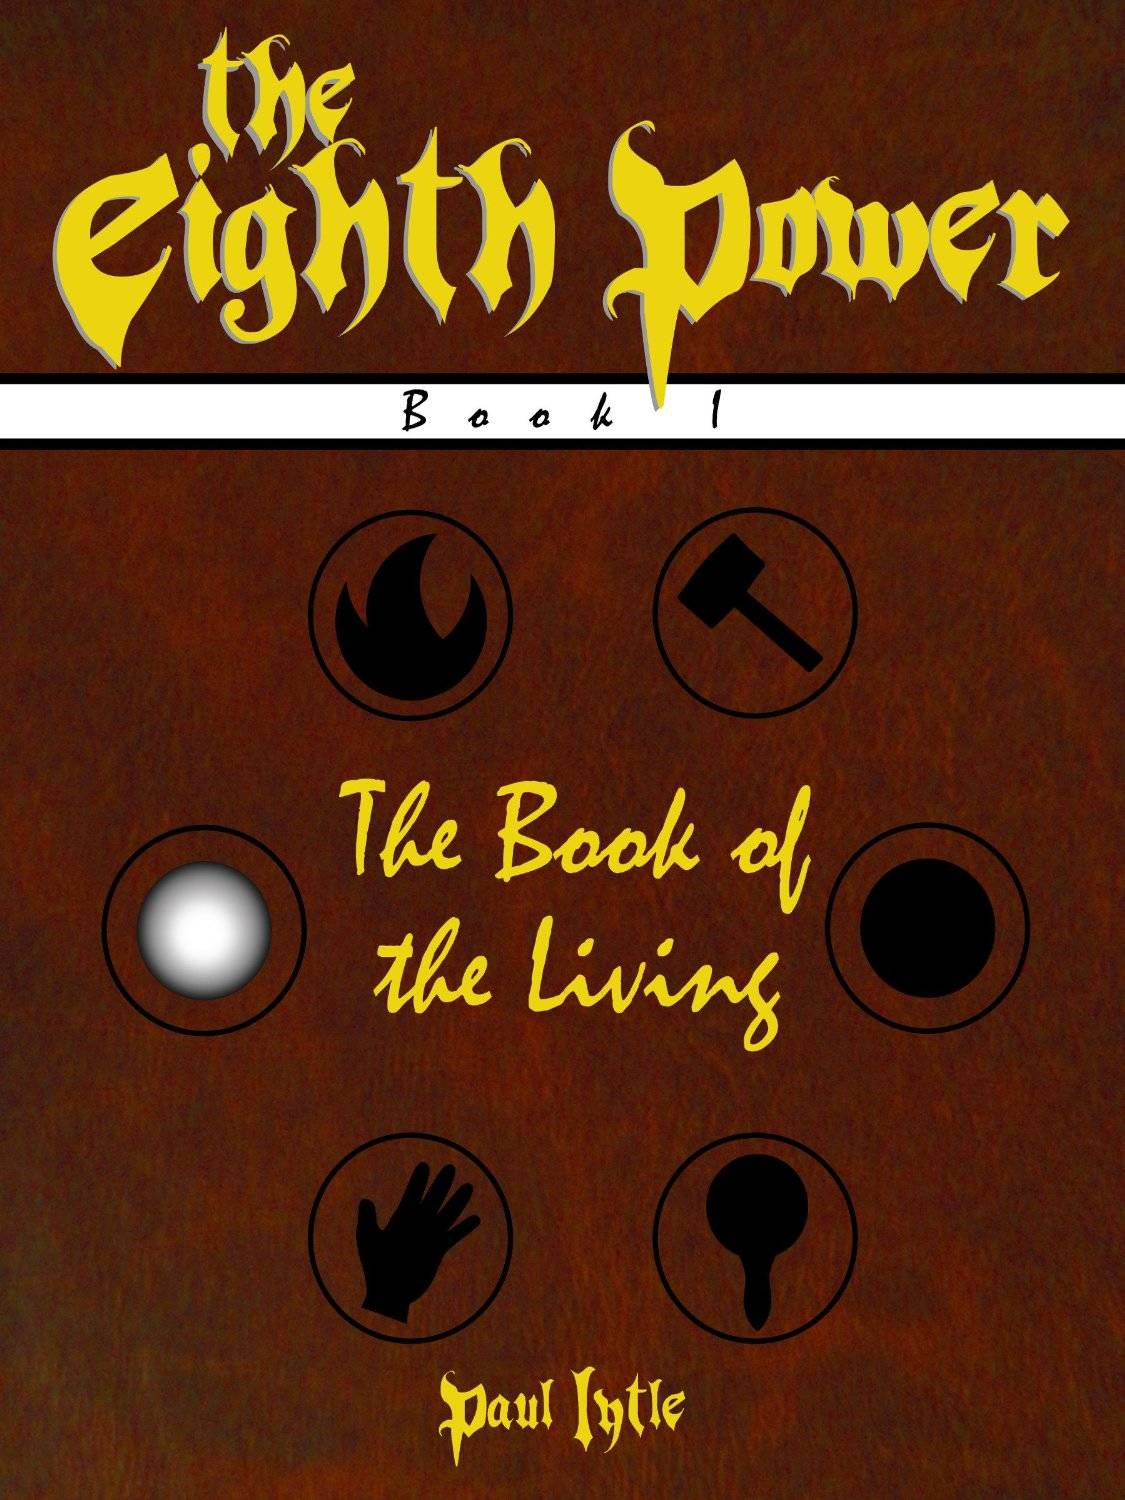 The Book of the Living, Book 1: The Eighth Power by Paul Lytle